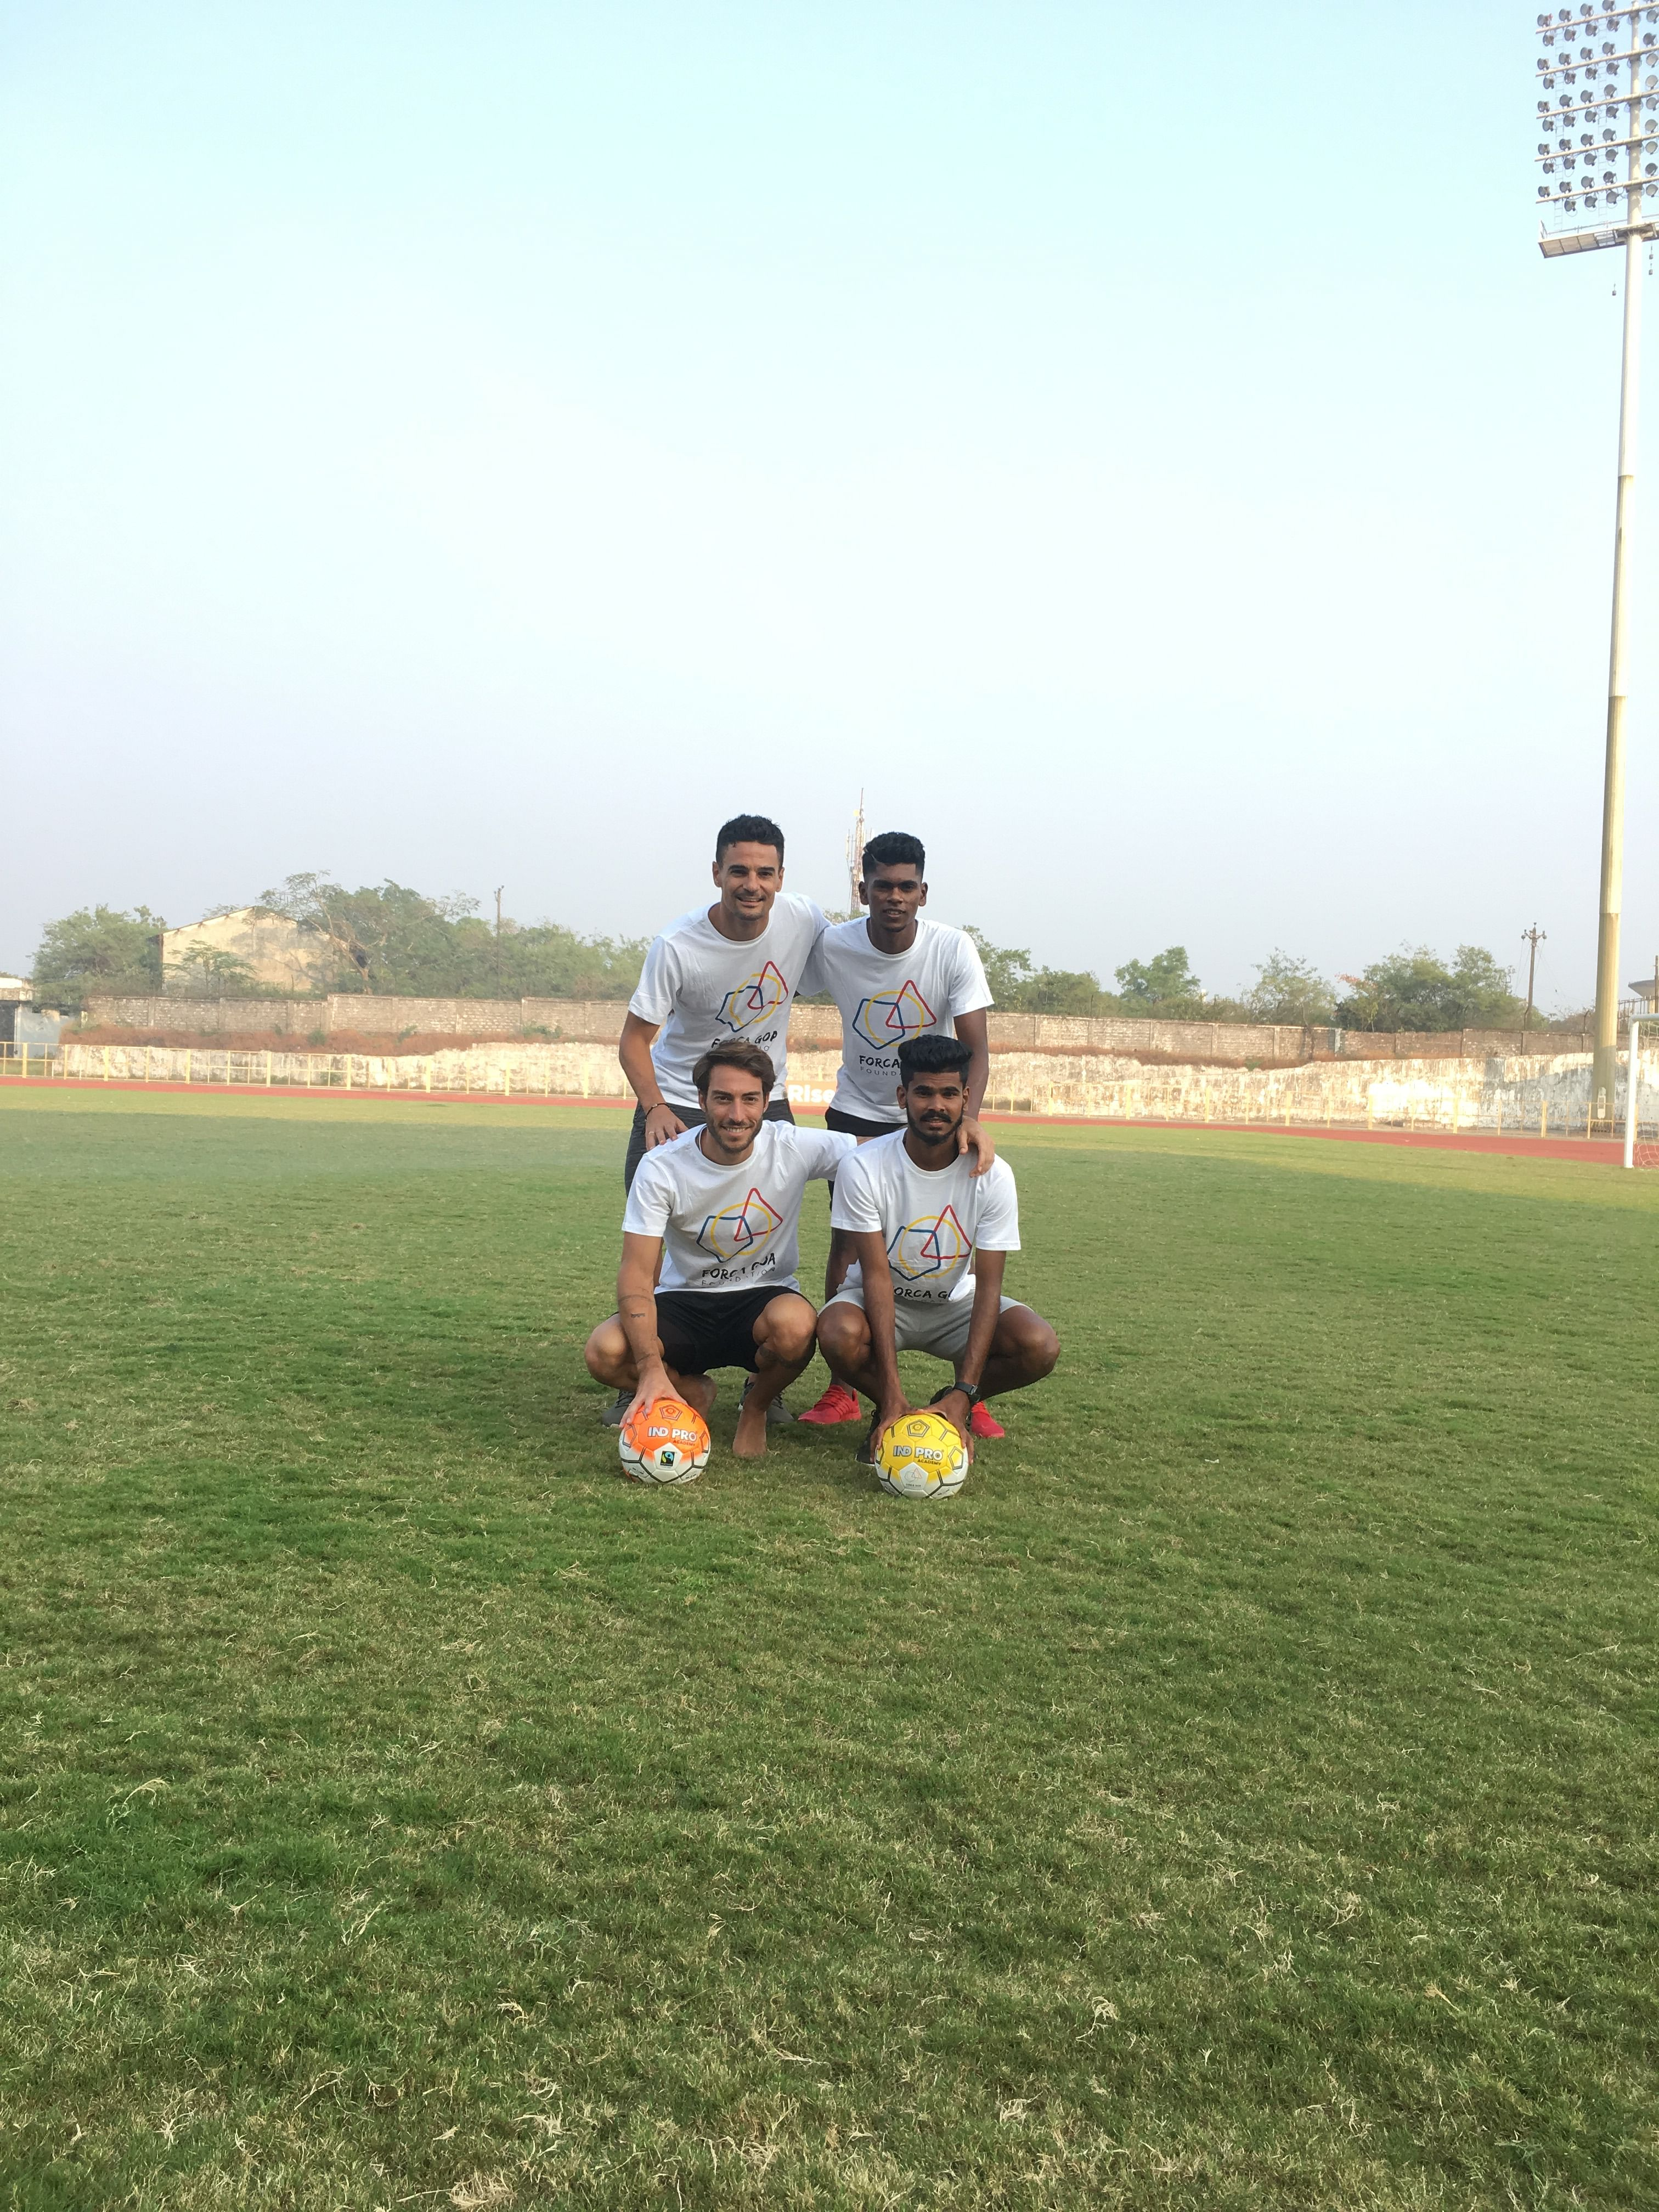 Carlos Pena, Miguel Palanca, Liston Colaco and Princeton Rebello of FC Goa showing their support for the cause!